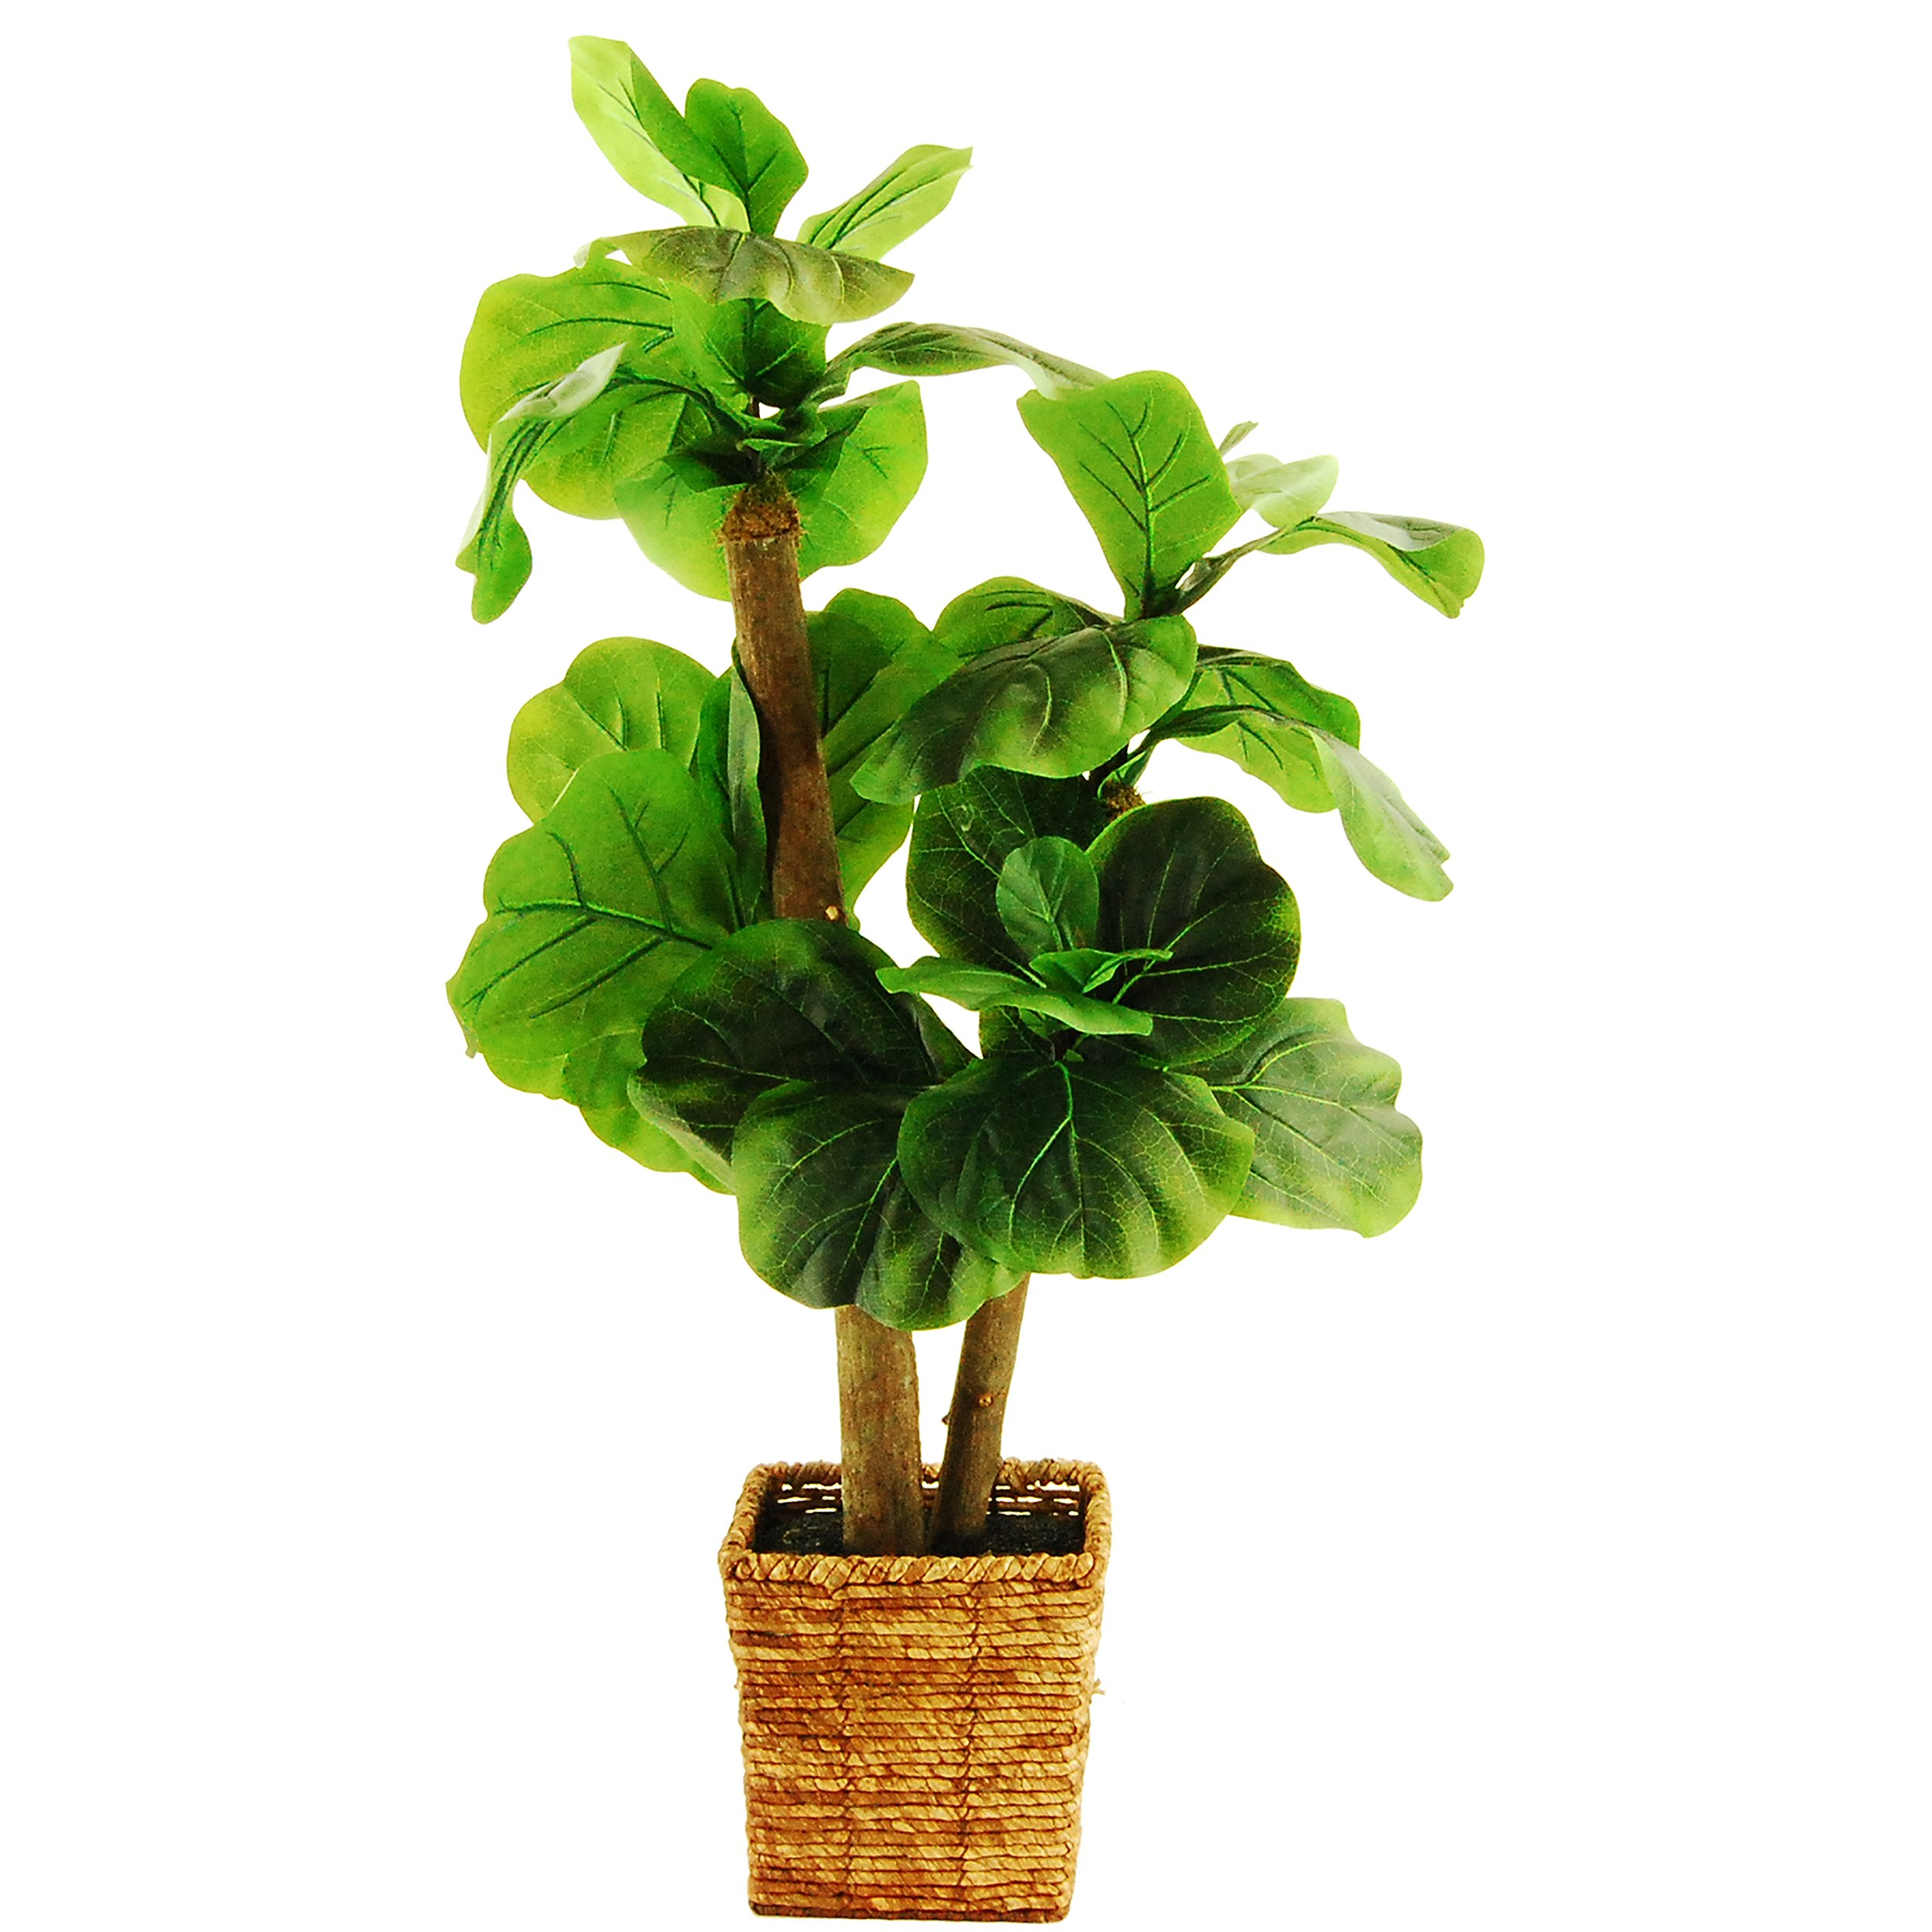 LCG Florals 38'' Fiddle-Leaf Fig Tree in a Square Basket with Faux Dirt, Mini